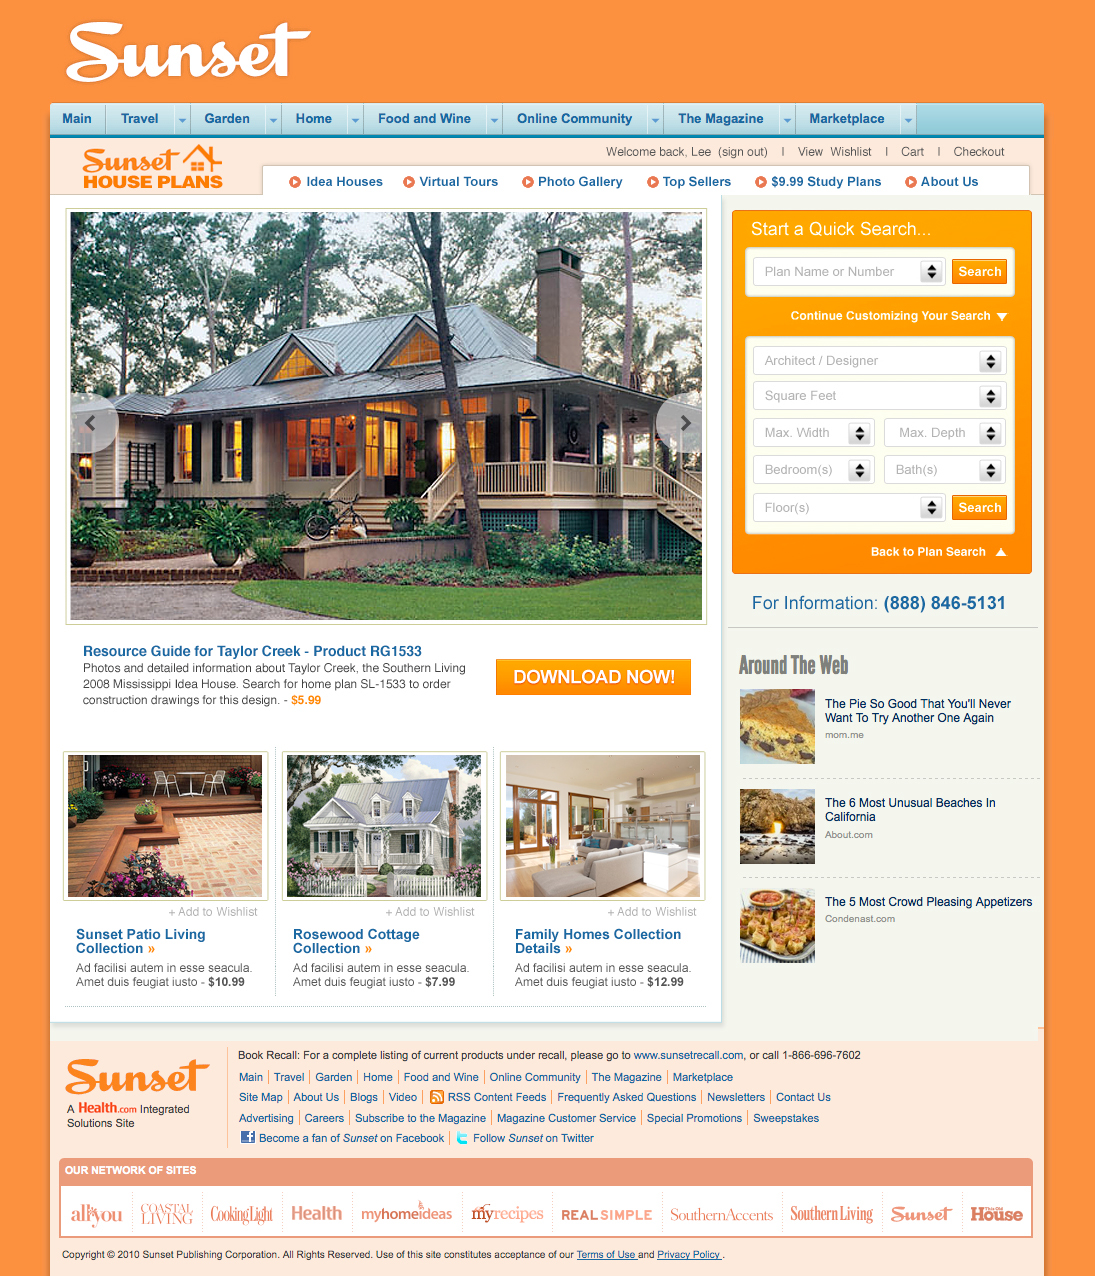 Merveilleux UI Design, CSS And Html Of House Plans Marketplace Templates. Designed To  Nest And Function Seamlessly Within SouthernLiving, Sunset, MyHomeIdeas And  ...